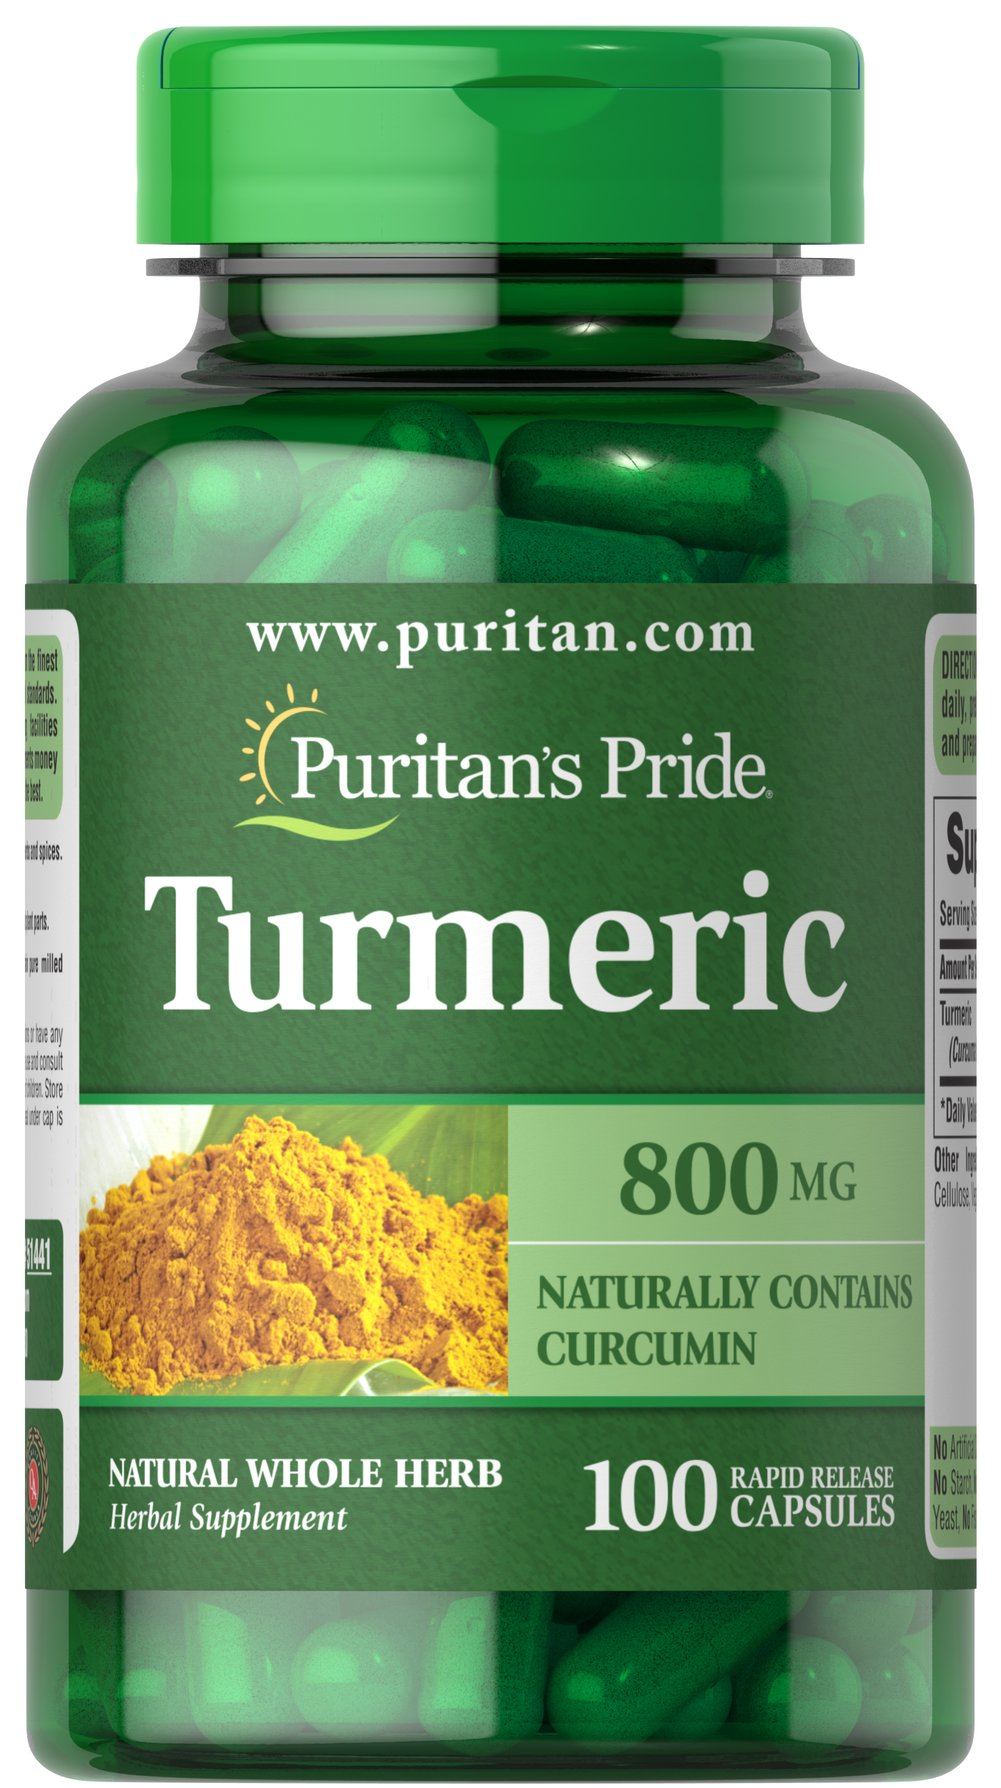 Turmeric 800 mg <p>Turmeric, a common spice used in curry dishes, has become a popular herbal supplement due to its potential antioxidant properties, which may contribute to brain health.** Available in 800 mg capsules, adults can take one capsule two times daily with meals. Capsules may be opened and prepared as a tea.</p> 100 Capsules 800 mg $11.99